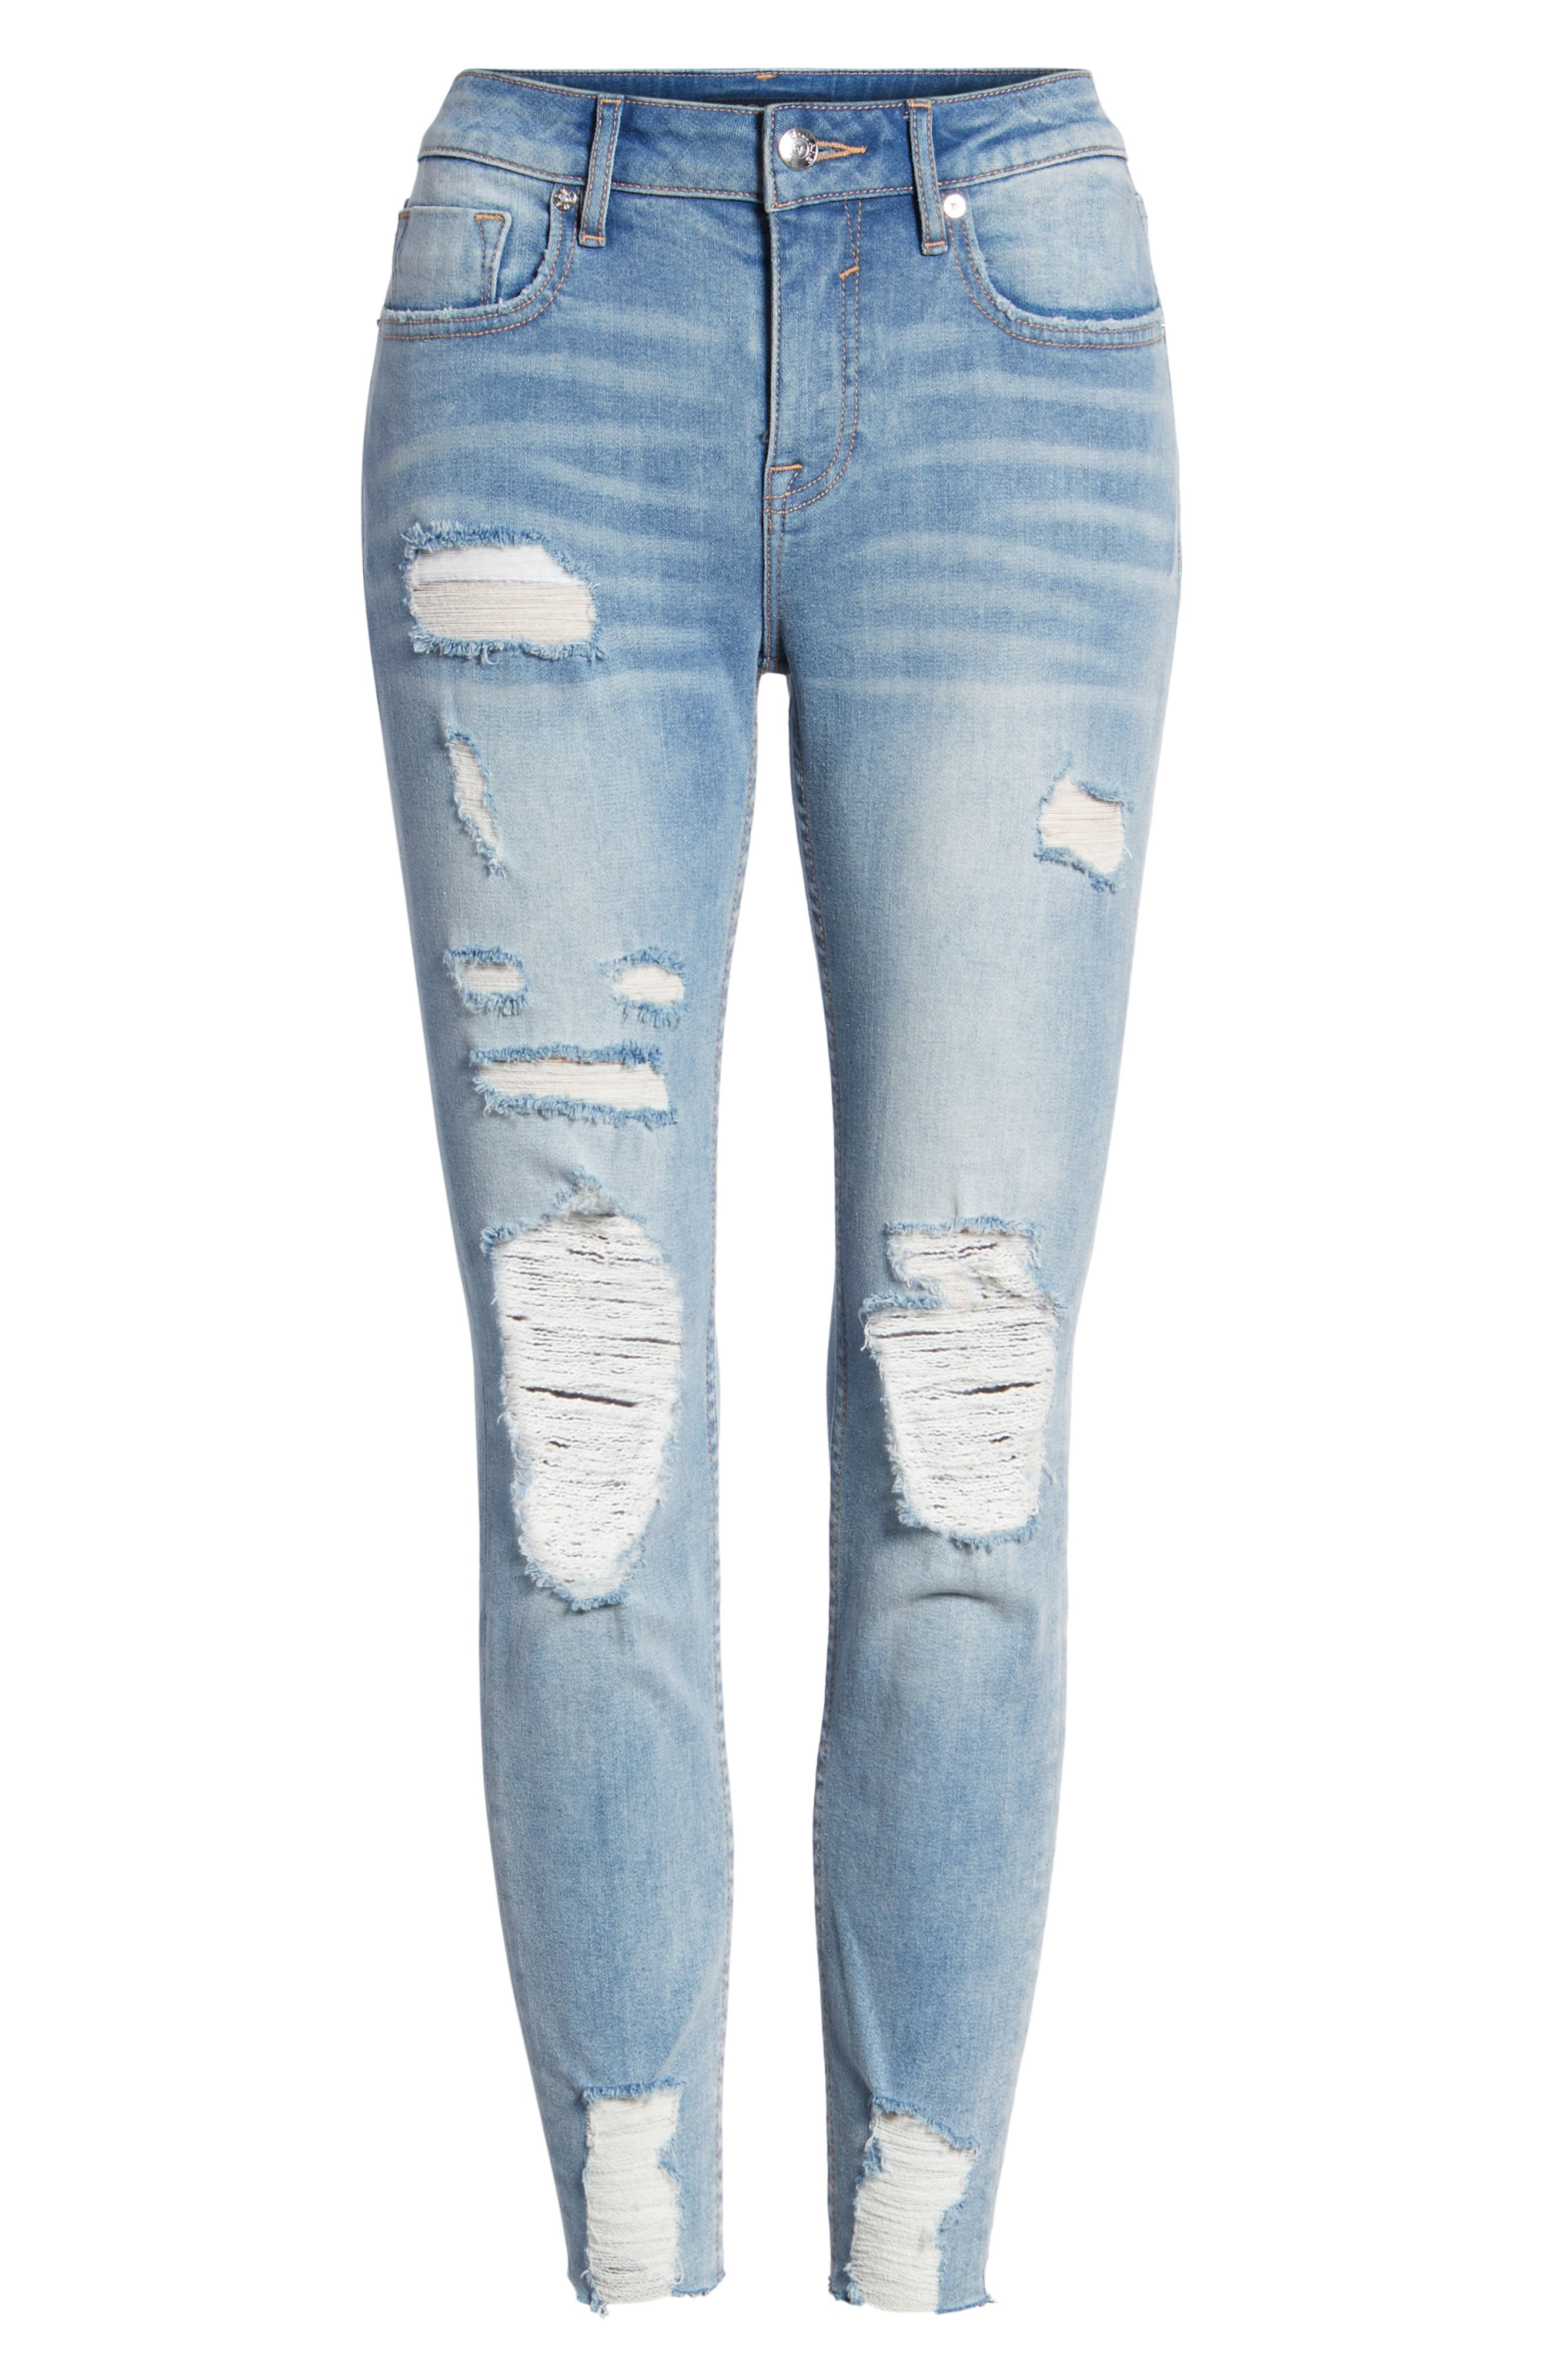 Marley Distressed Crop Skinny Jeans,                             Alternate thumbnail 7, color,                             461